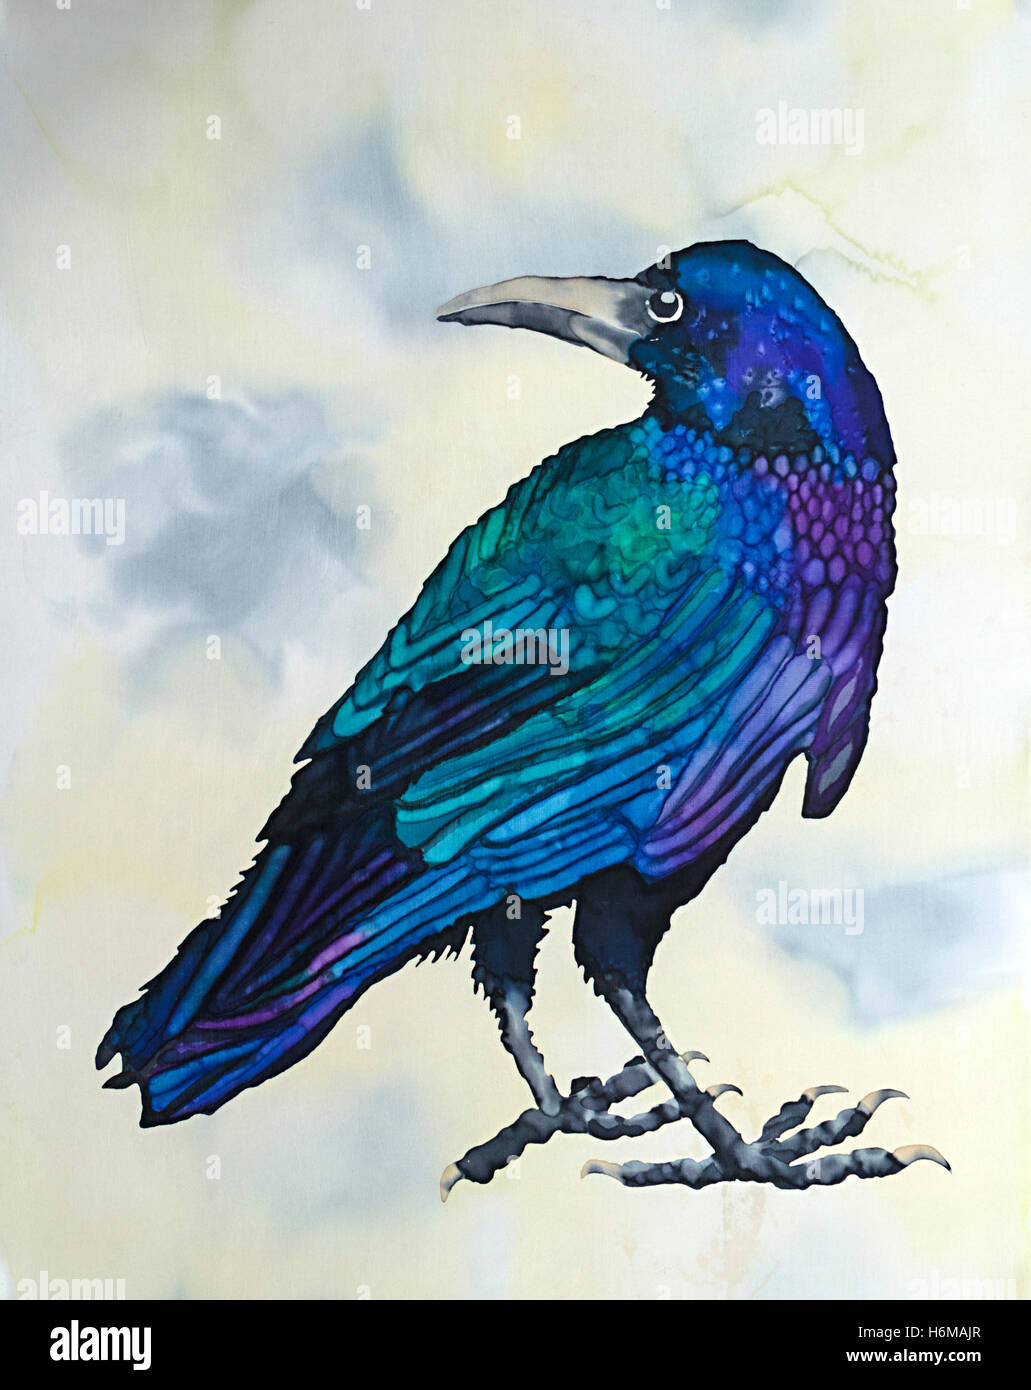 Photograph of silk painting of a rook bird against graded background using steam fixed dyes by Paula Chapman. Stock Photo